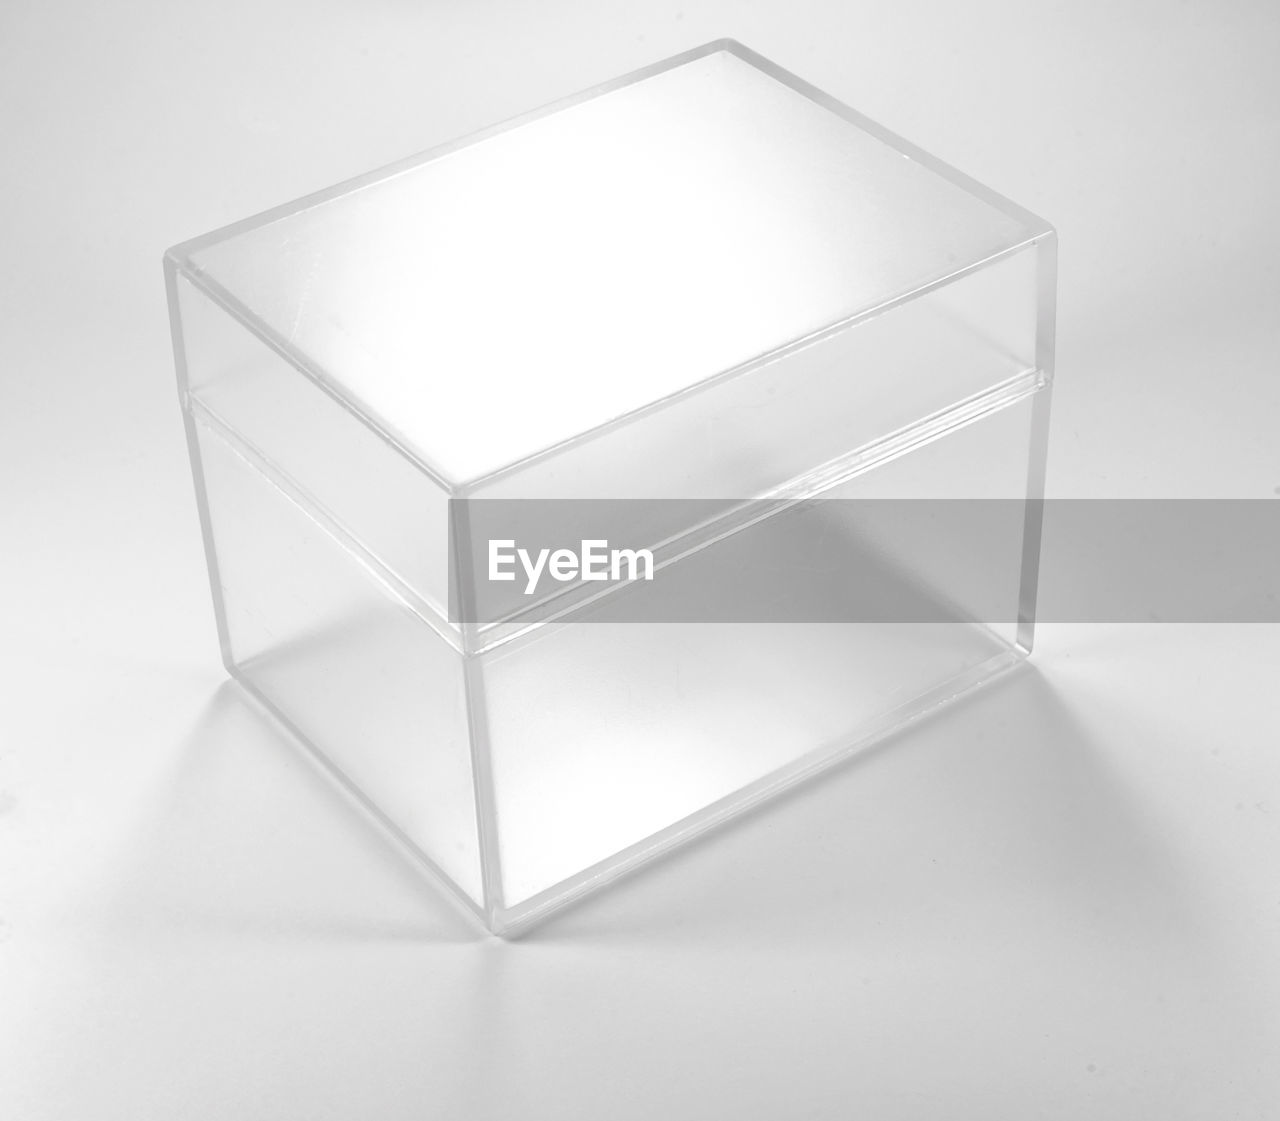 container, no people, white color, indoors, box, box - container, still life, studio shot, white background, close-up, single object, shape, geometric shape, pattern, cube shape, high angle view, design, glass - material, simplicity, empty, silver colored